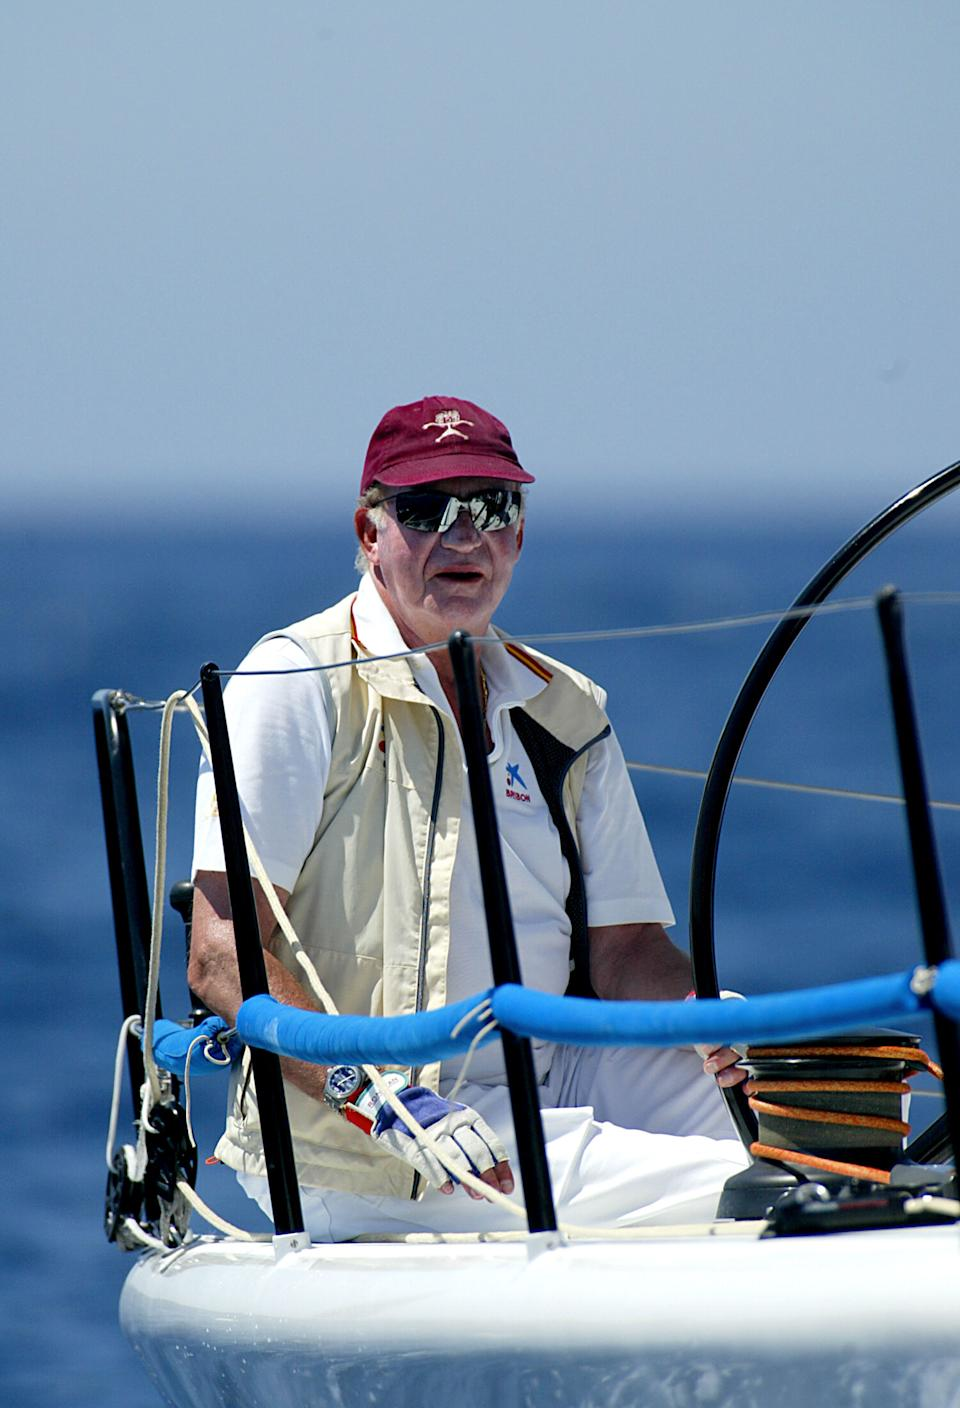 """Spain's King Juan Carlos is seen at the helm of the yacht """"Bribon"""" during the second Breitling regatta off the coast of Palma de Mallorca, 21 July 2006. The Spanish Royal Family are in Palma de Mallorca for their traditional summer holidays at the Marivent Palace. AFP PHOTO/Jaime REINA (Photo by Jaime REINA / AFP) (Photo by JAIME REINA/AFP via Getty Images)"""